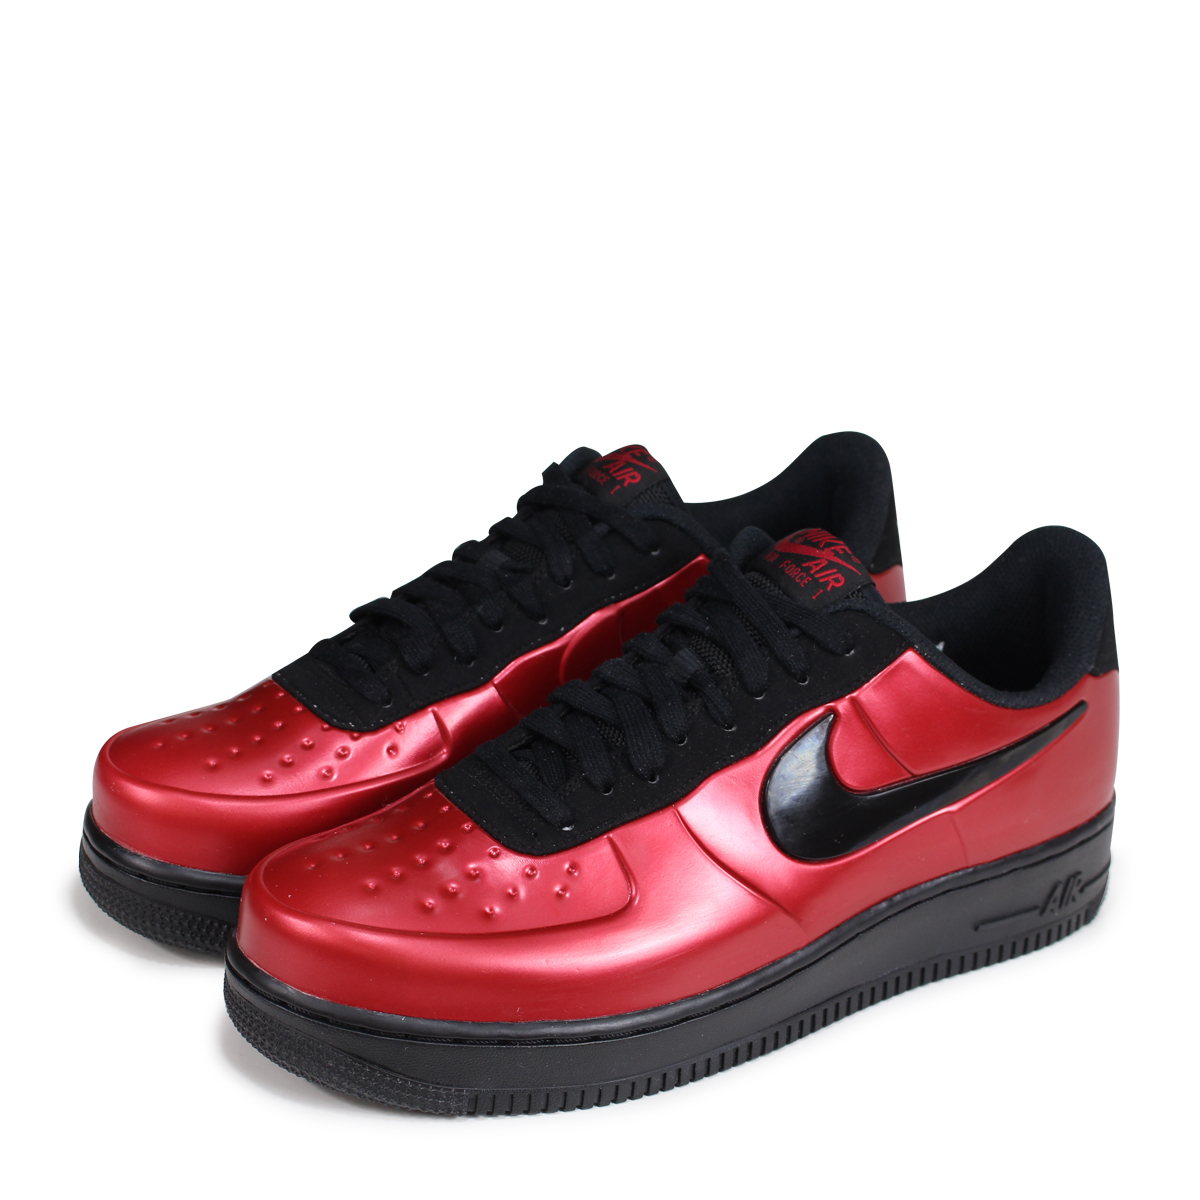 wholesale dealer d1f09 f397e NIKE AIR FORCE 1 FOAMPOSITE PRO CUP AF1 Nike air force 1 sneakers men  AJ3664- ...